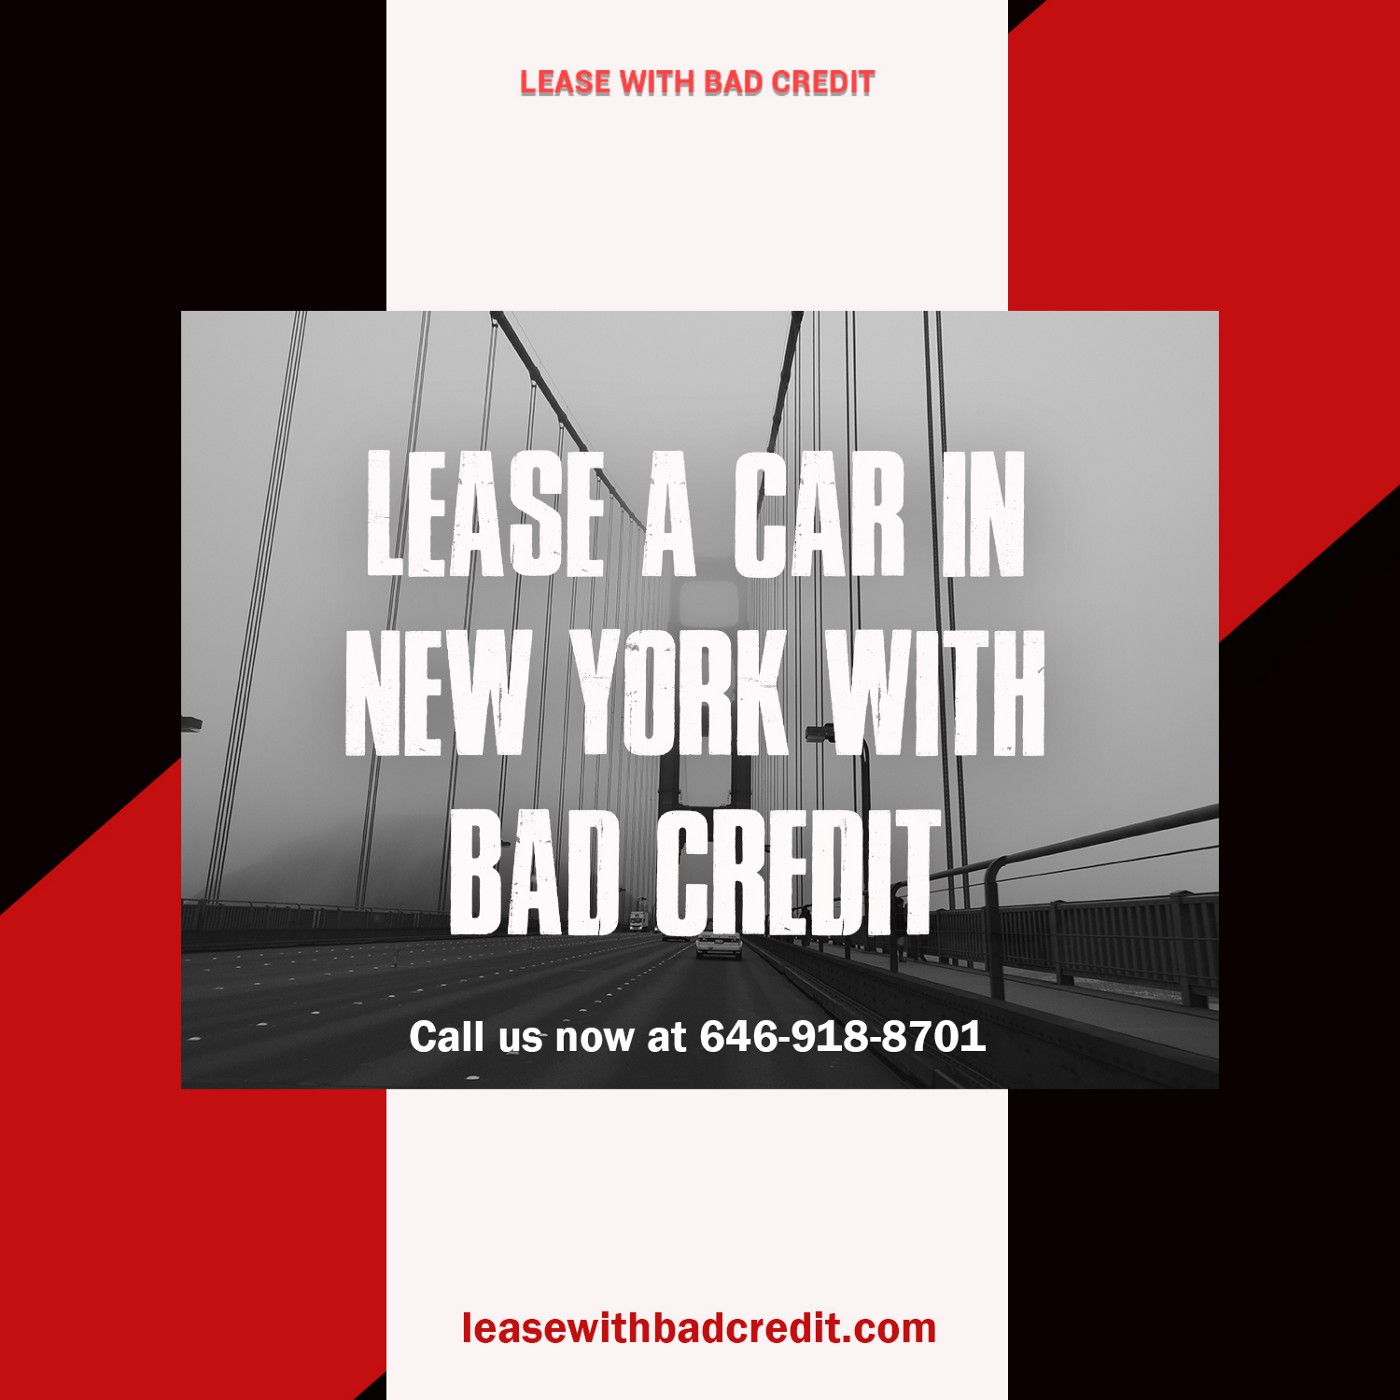 Lincoln Lease Offers: Lease With Bad Credit